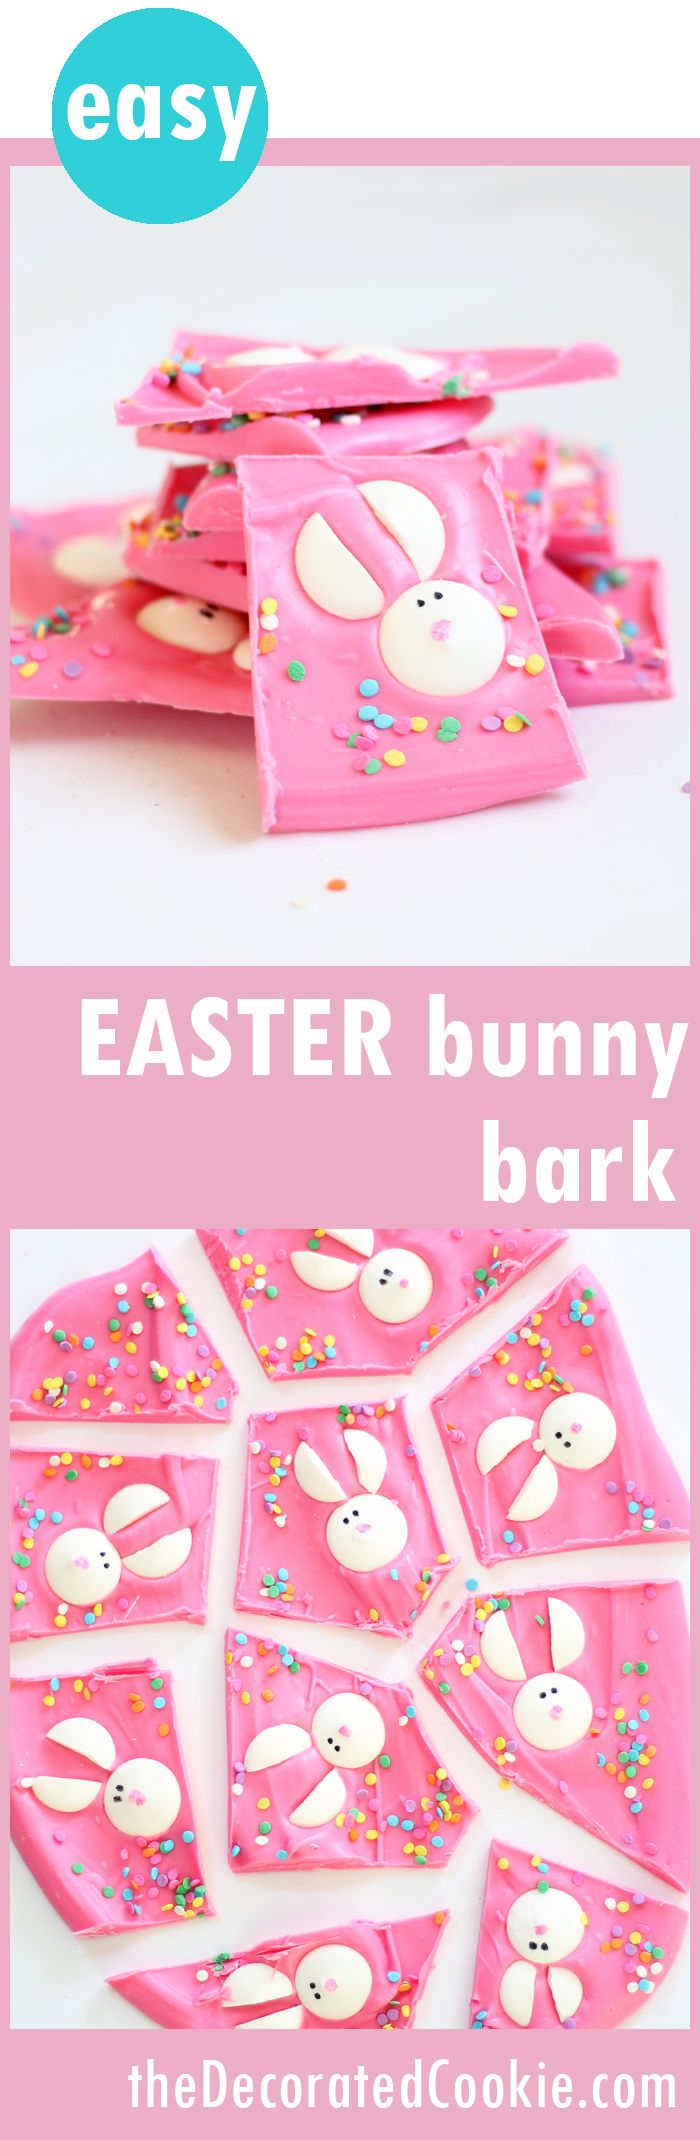 Best 25+ Easter bunny cake ideas on Pinterest | Happy easter bunny ...